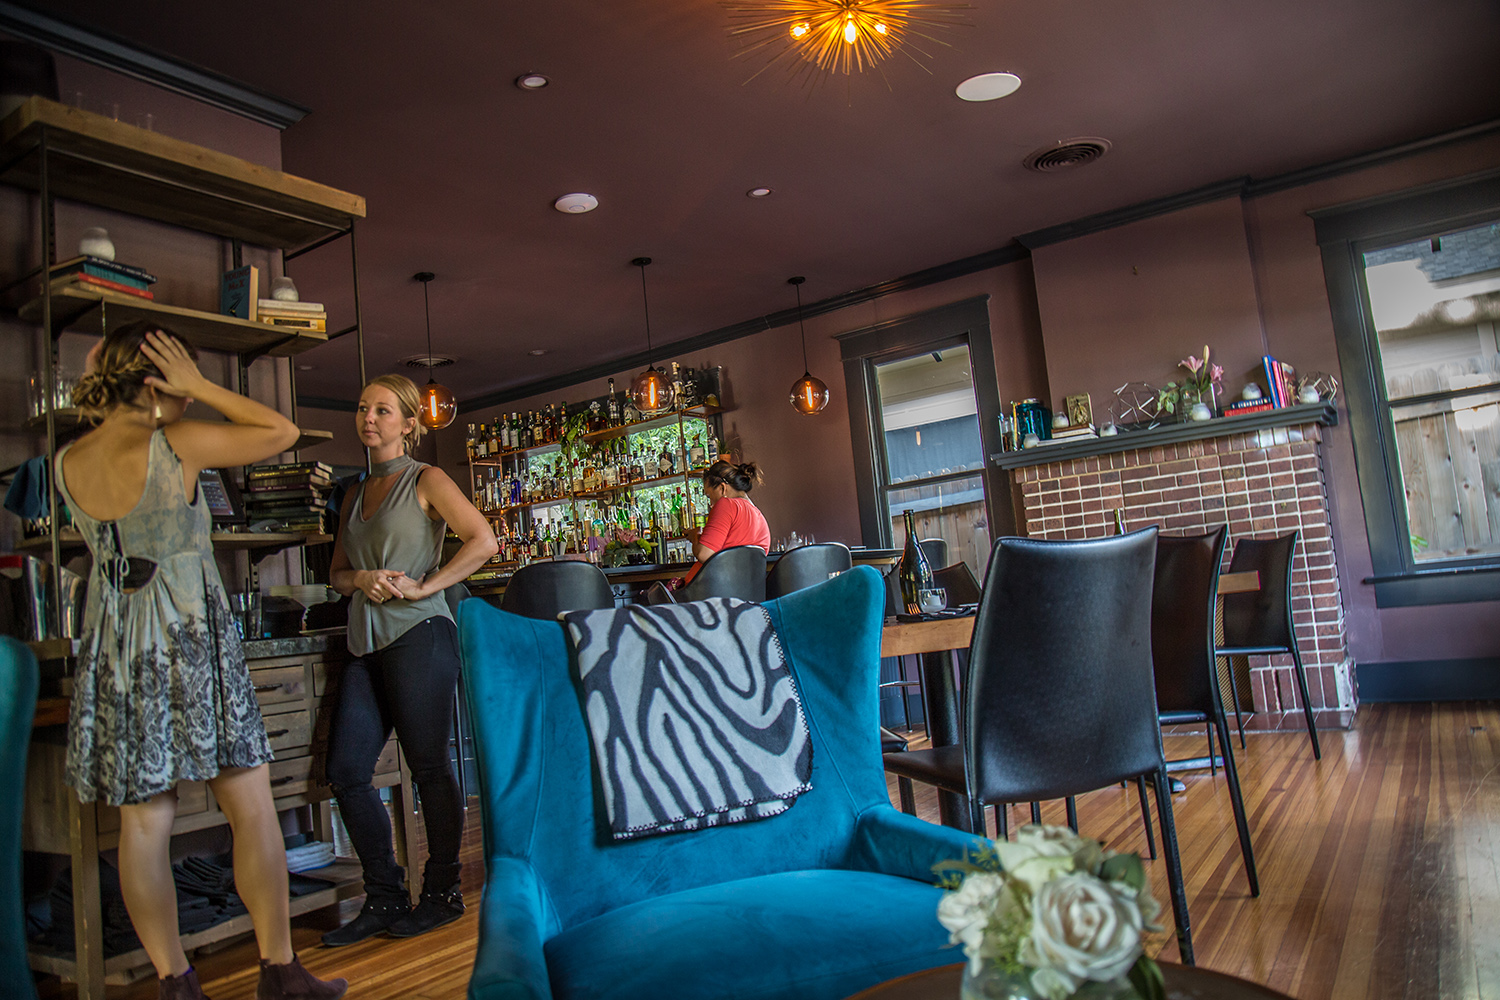 Nightcap is a great far West 6th Street upscale eatery